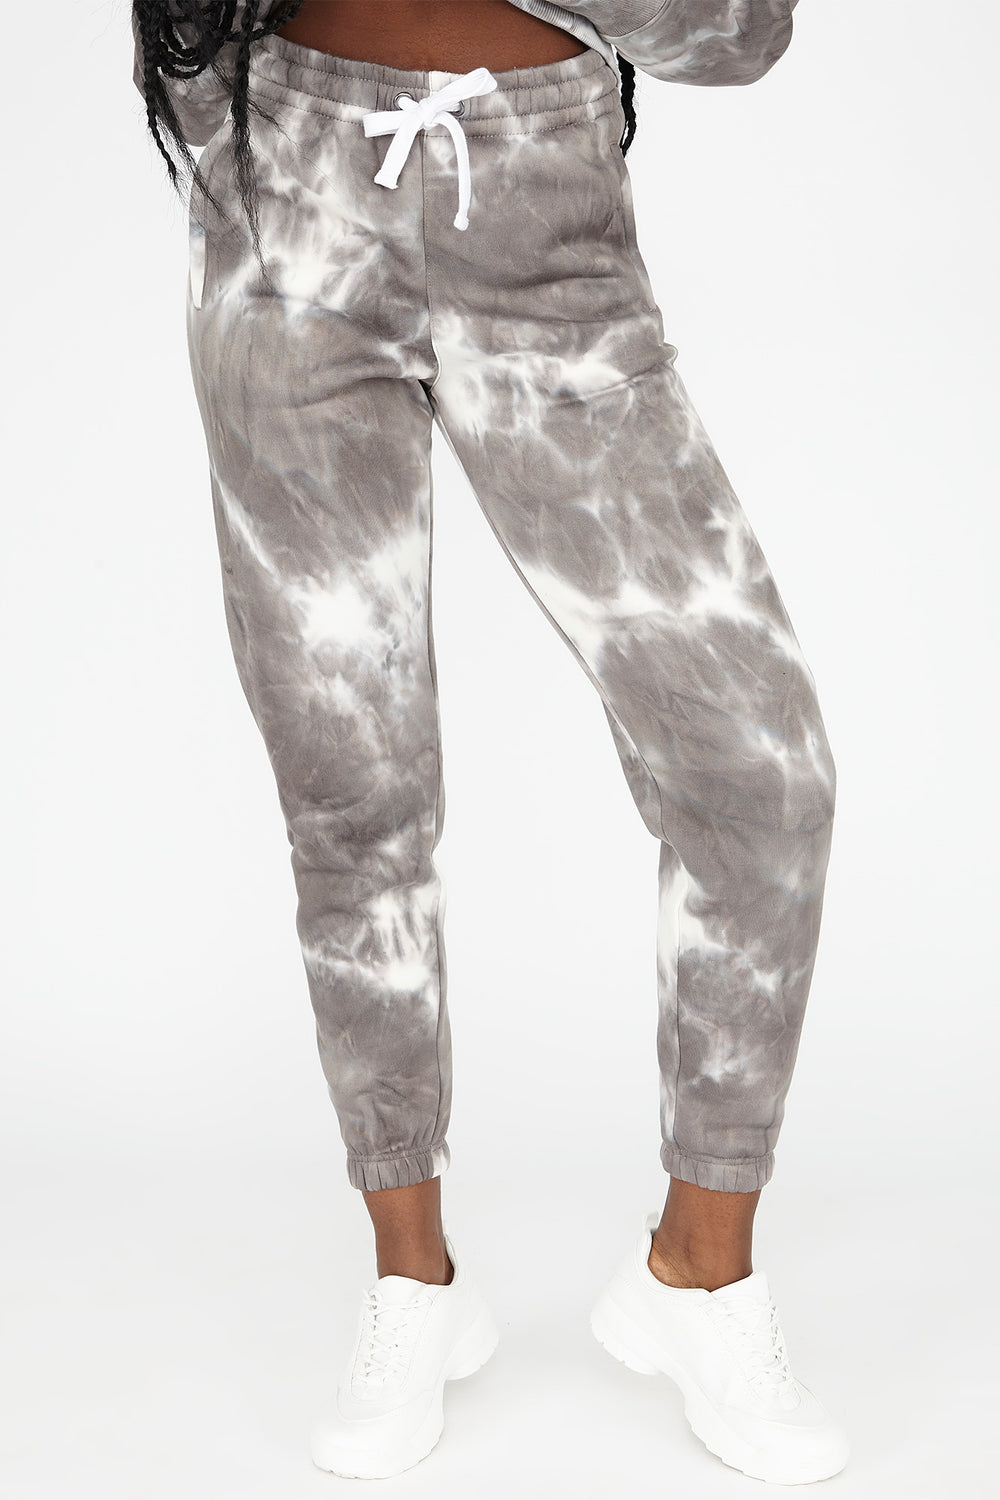 Fleece Tie Dye Boyfriend Jogger Light Grey